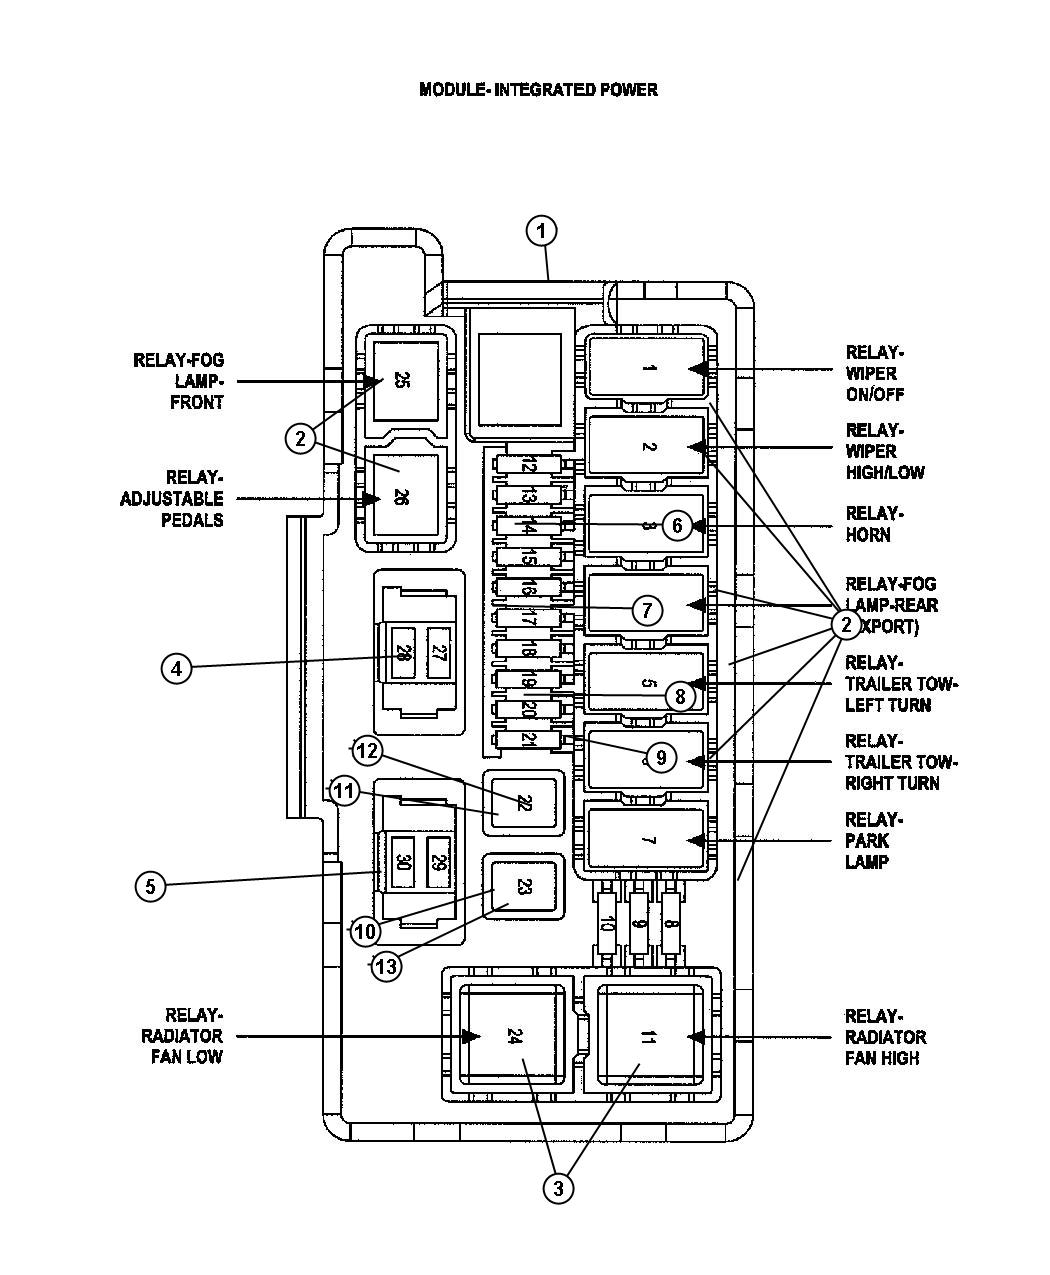 i2163577 jeep stereo wiring diagram jeep free wiring diagrams 2008 jeep wrangler horn wiring diagram at readyjetset.co